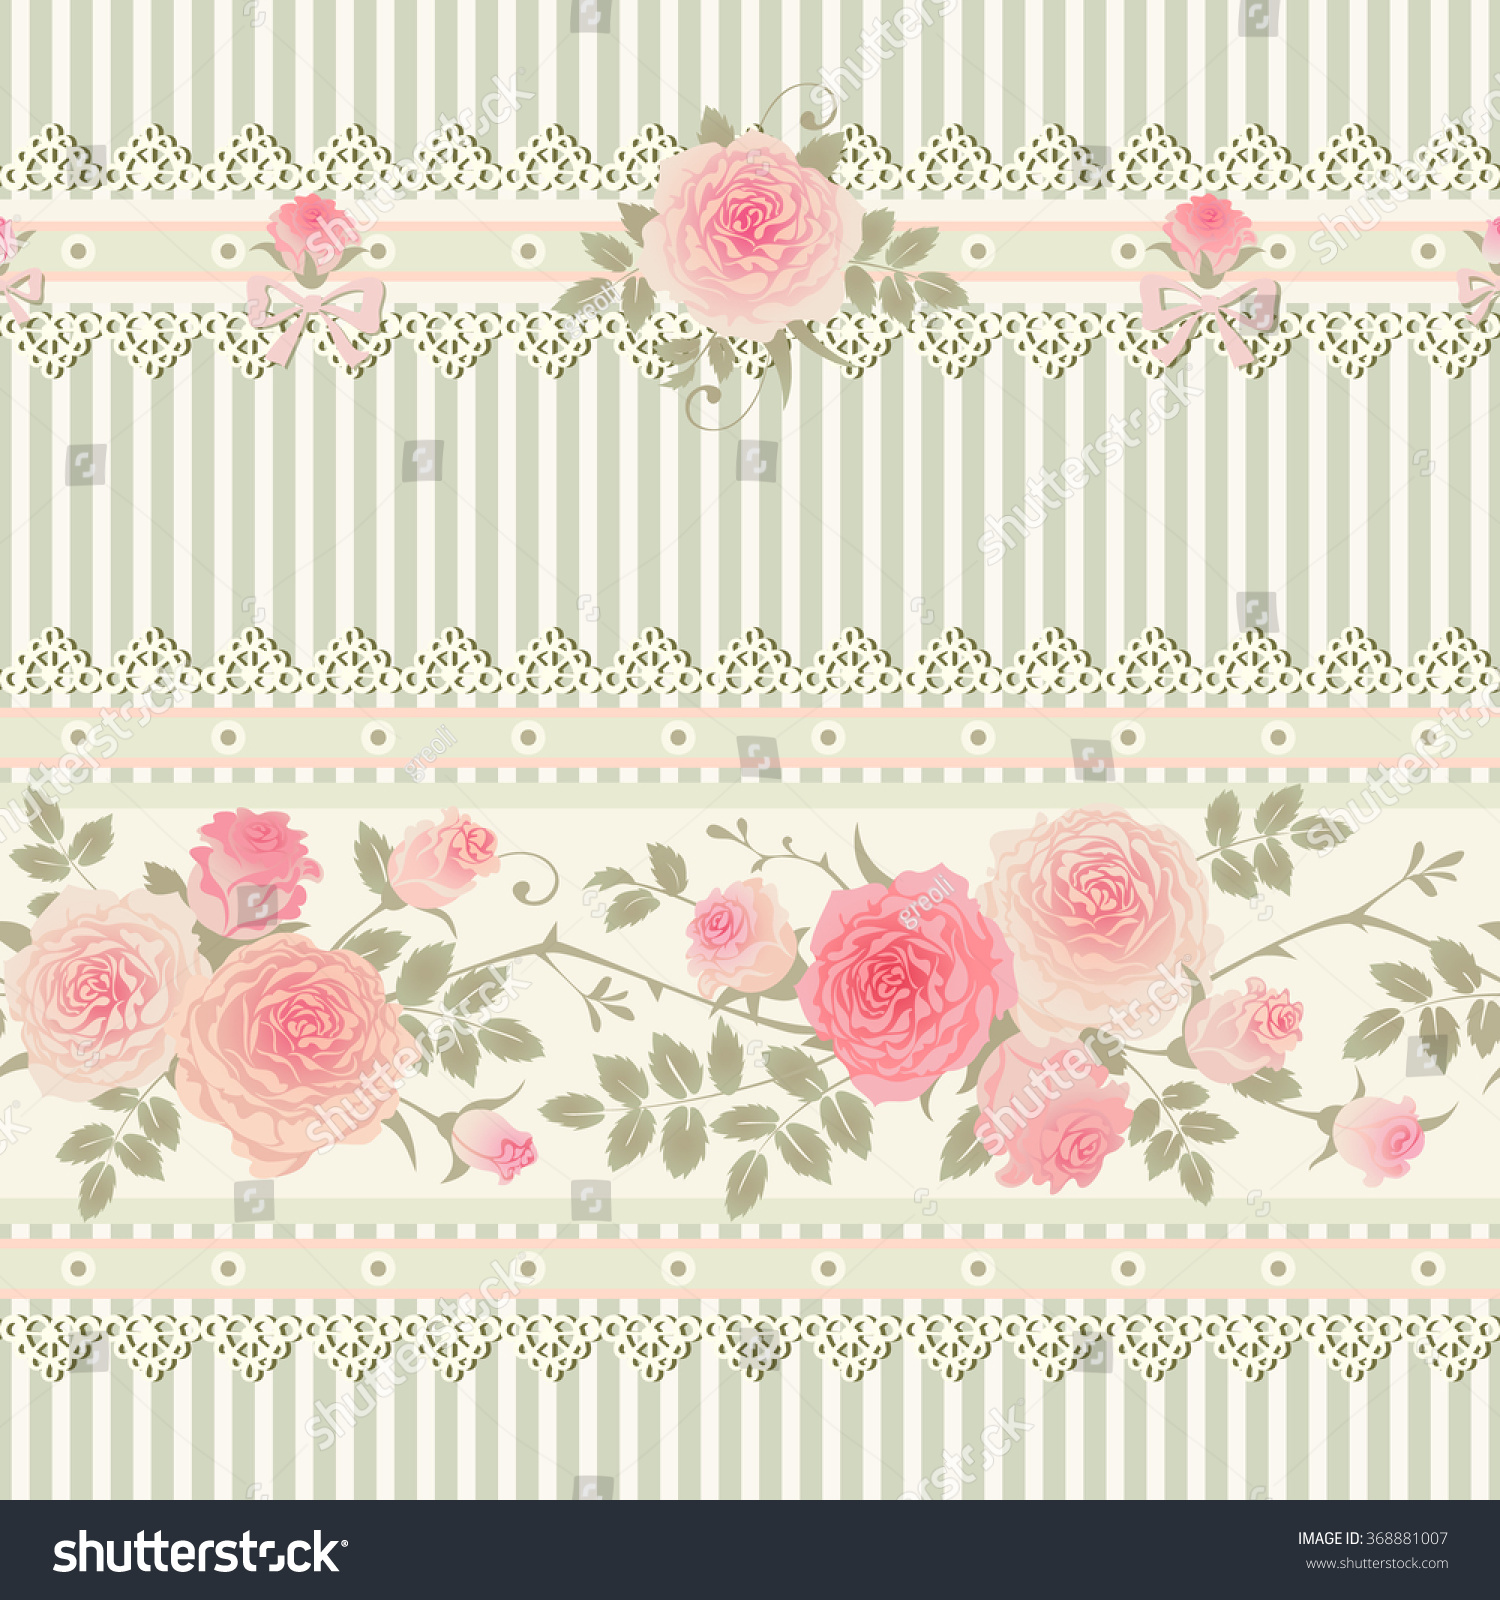 Seamless Floral Background Shabby Chic Style Striped Pattern With Laces Bows And Pink Roses